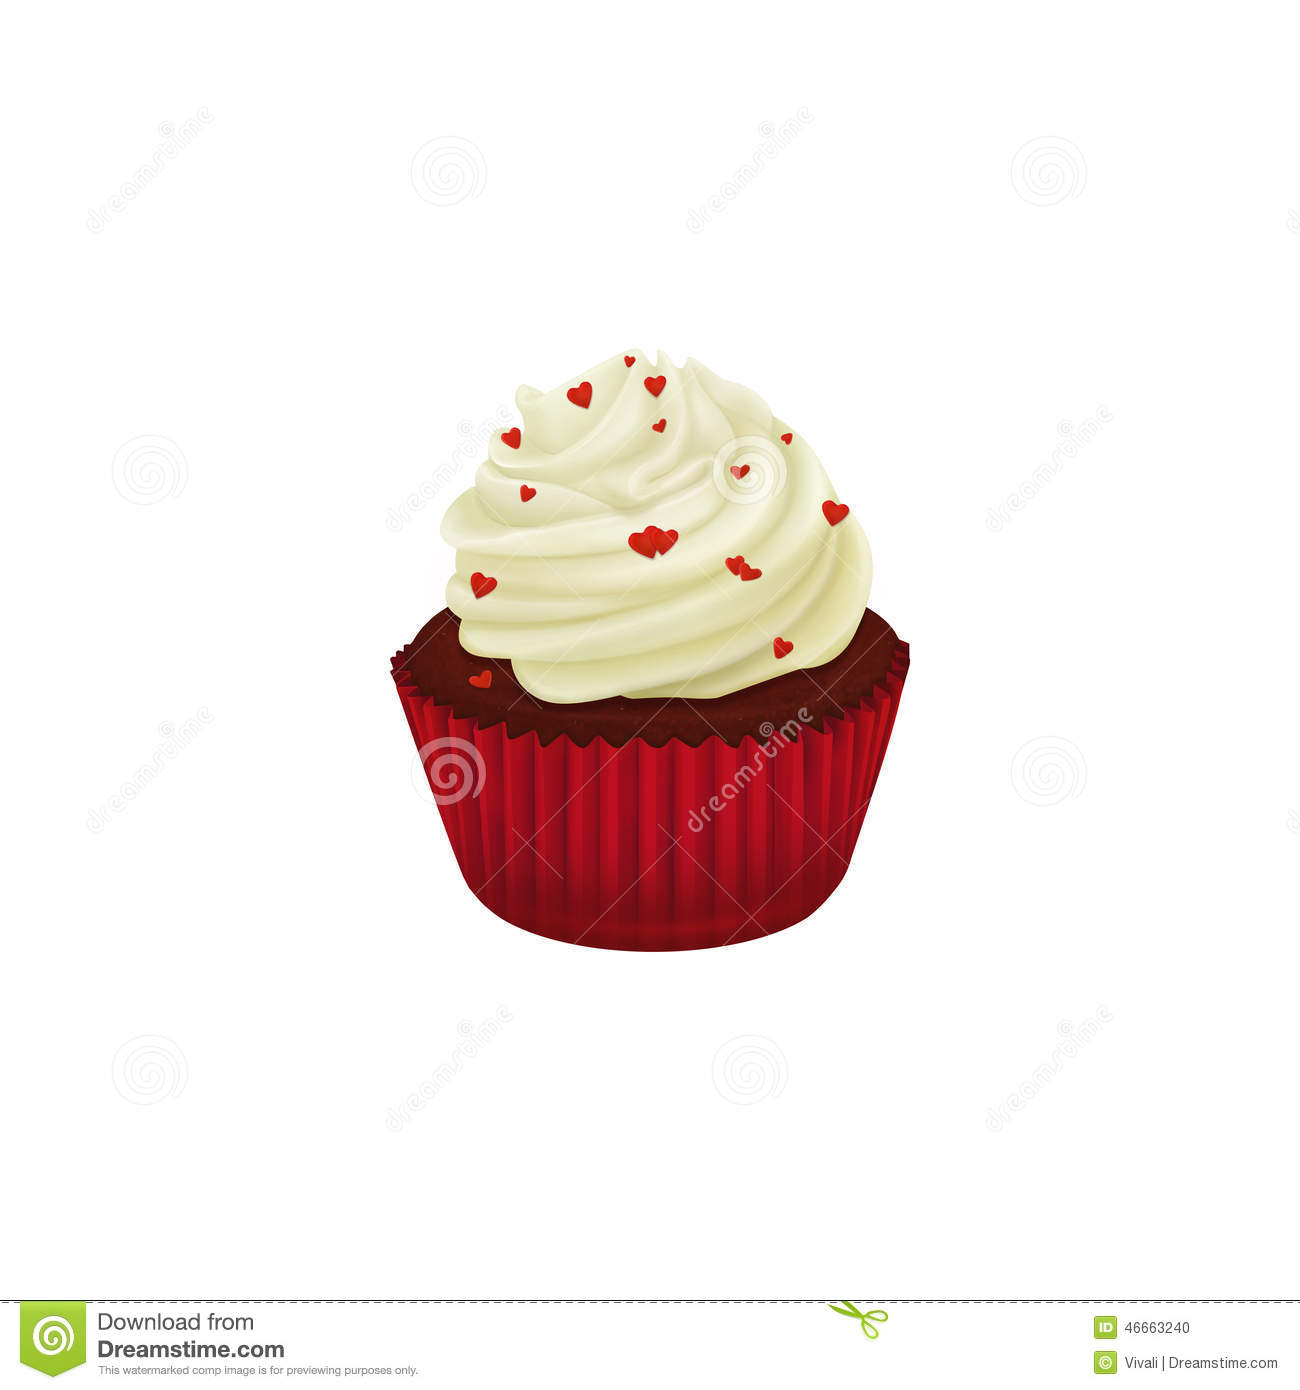 Red Velvet Cupcake Decorated With Red Hearts Stock Illustration.